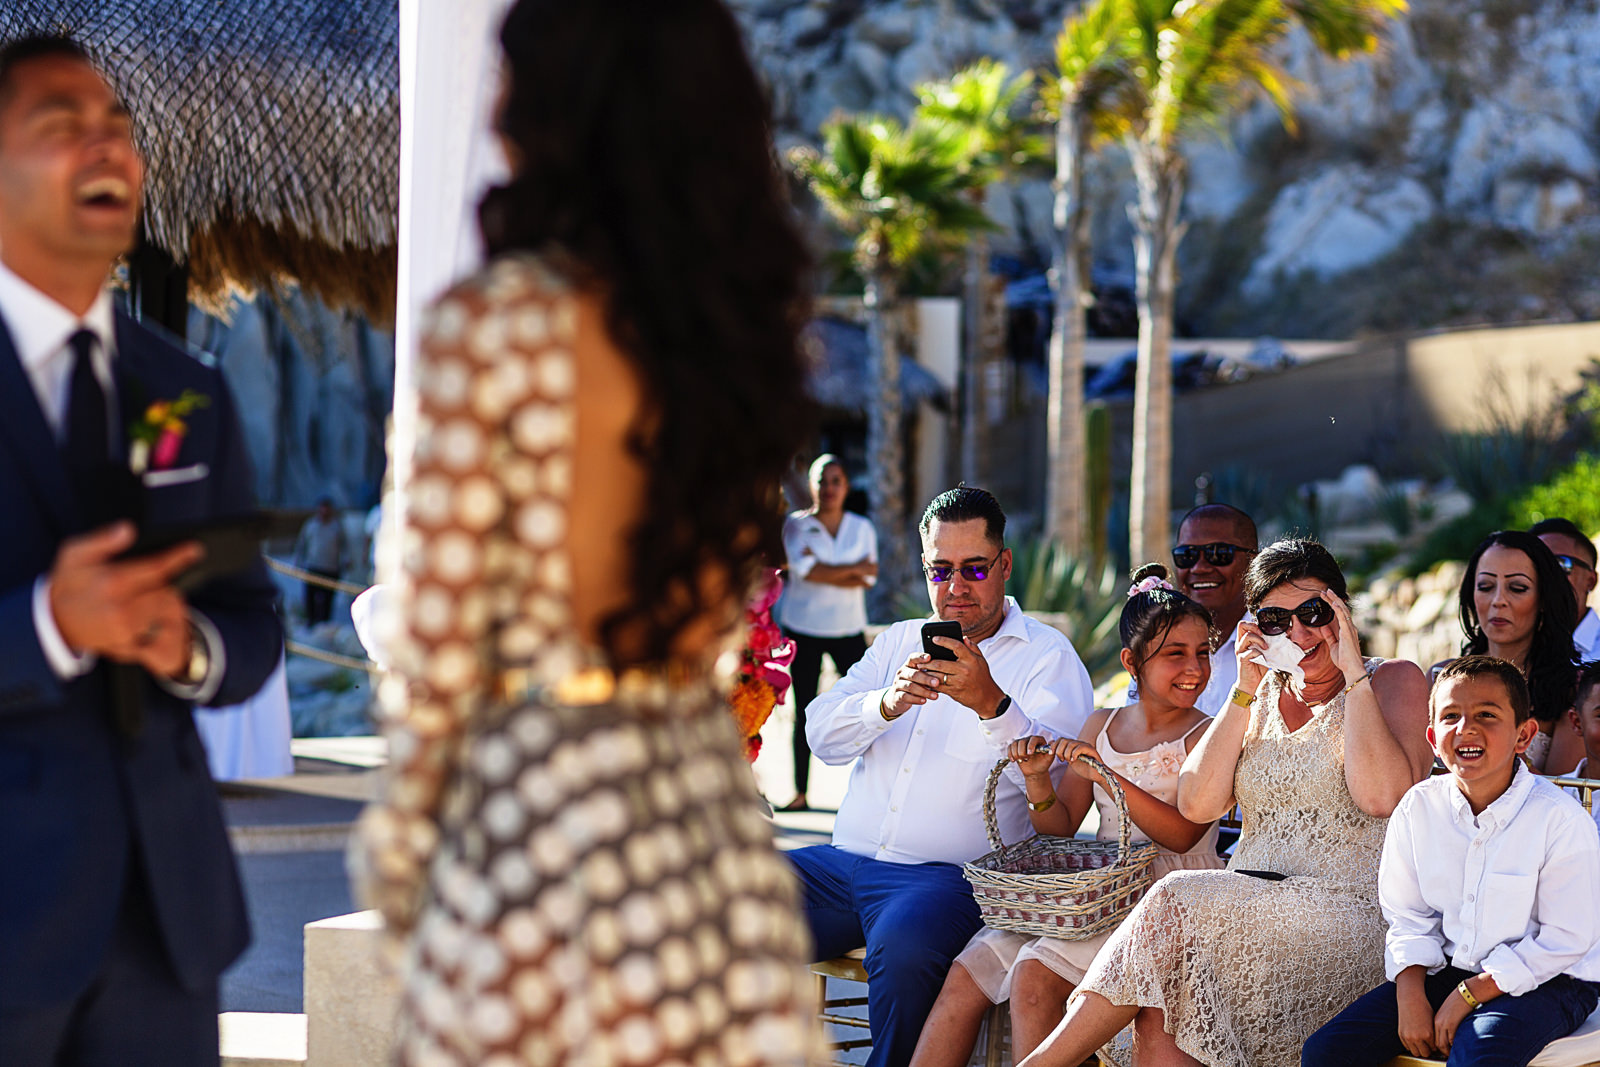 Wedding guests reactions during the destination wedding ceremony in Cabo San Lucas